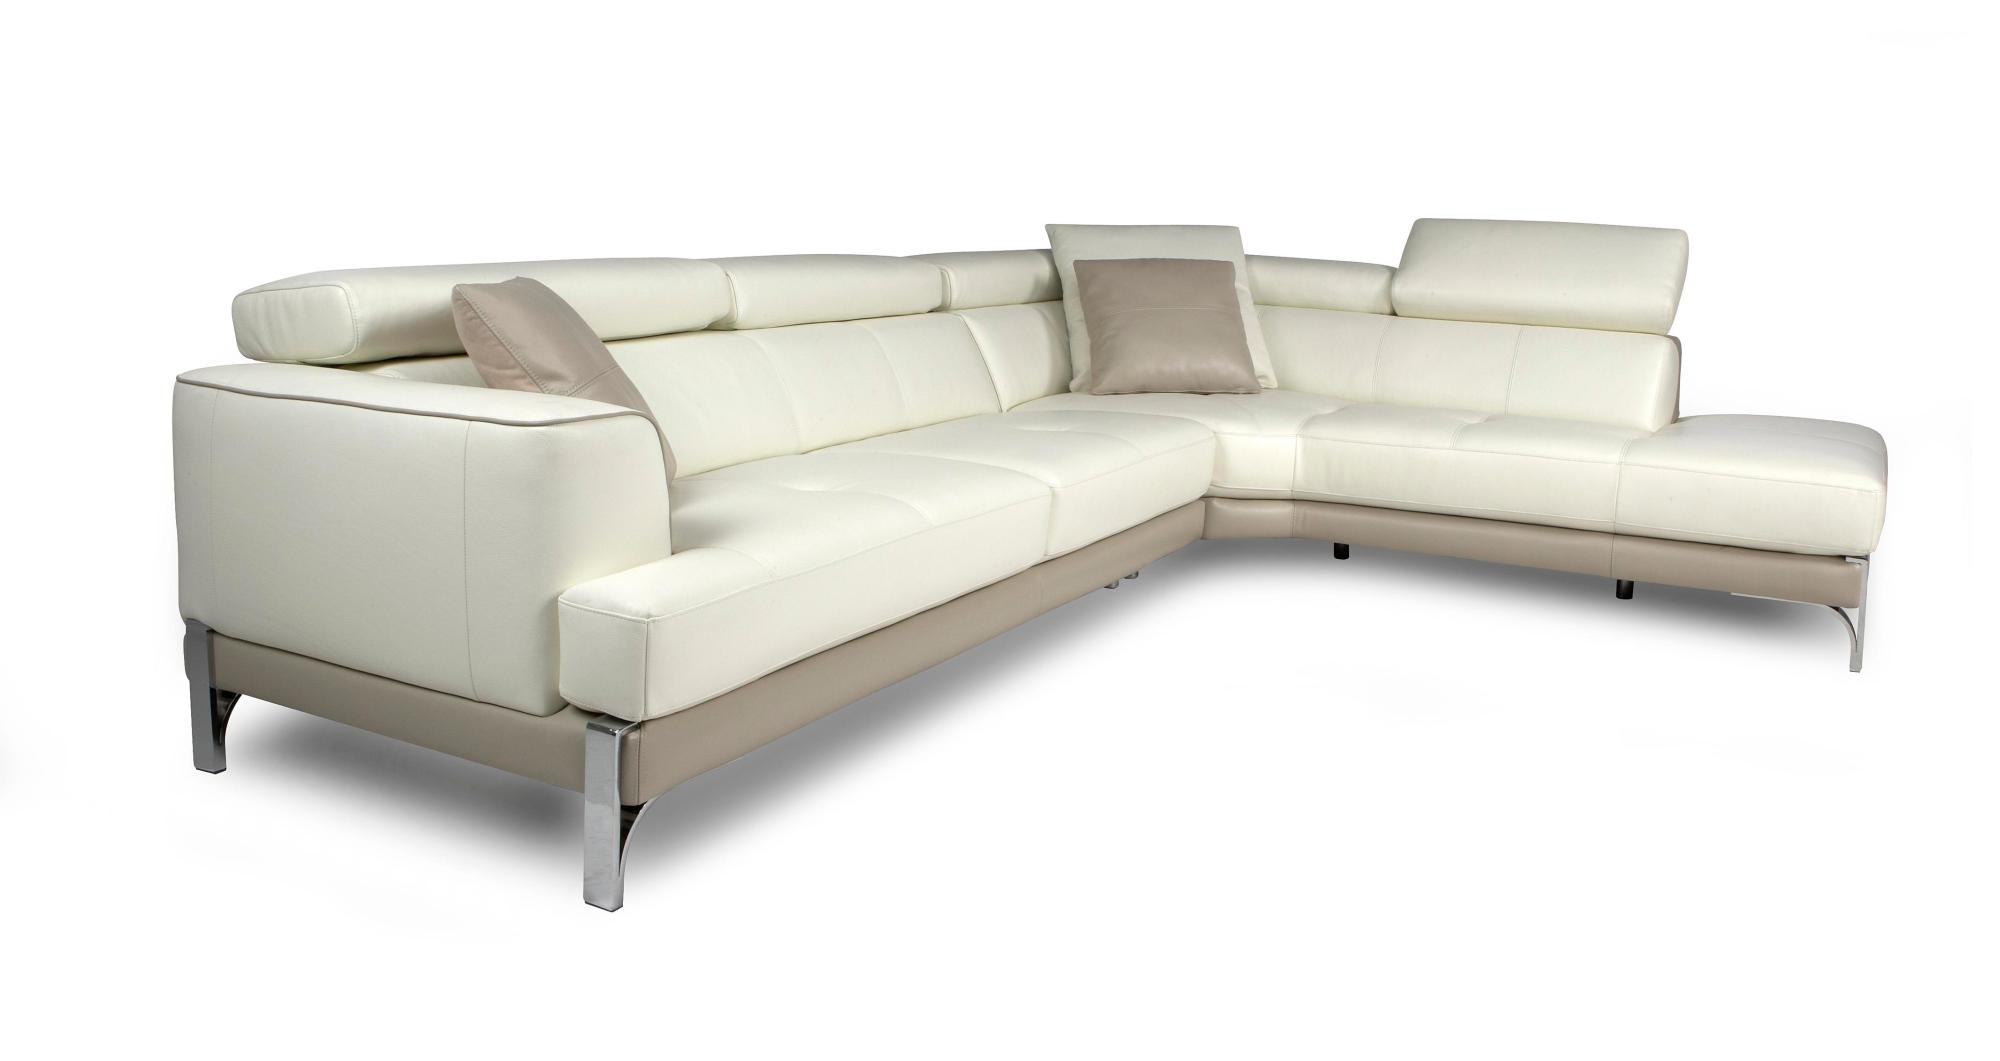 Set 7 Seater Karachi Sofa